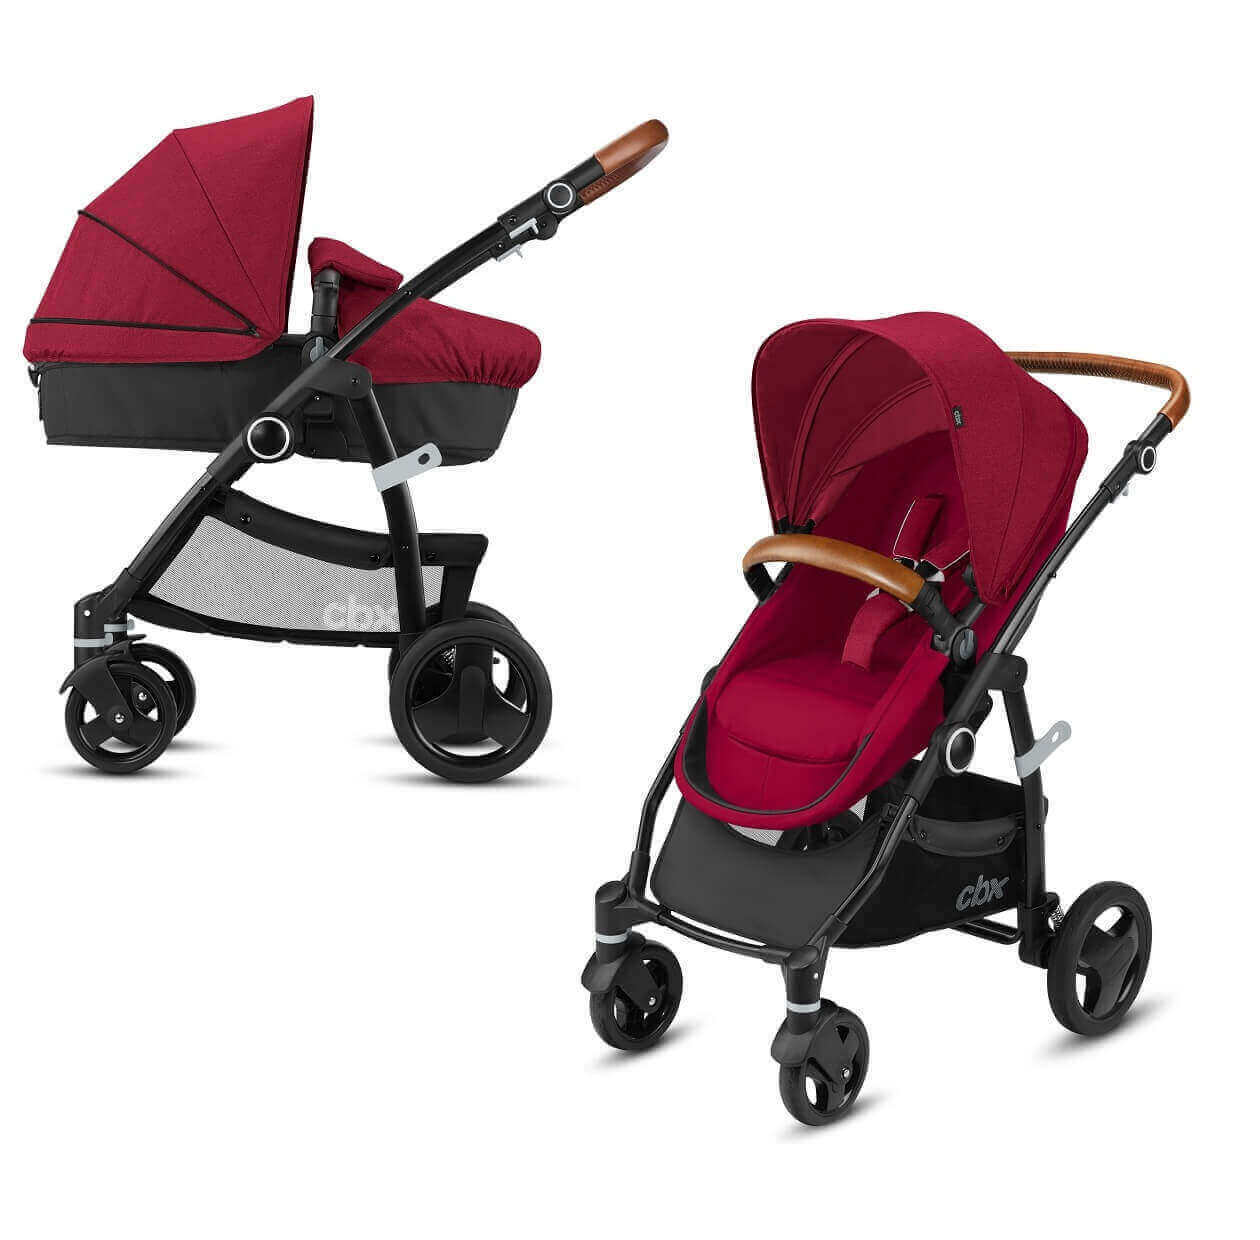 CBX by Cybex Leotie Flex трансформер Коляска-трансформер CBX by Cybex Leotie Flex Lux Crunchy Red CBX_18_000_LEOTIE_flex_lux_Red_Carrycot_0089_DERV_HQ_-_копия.jpg